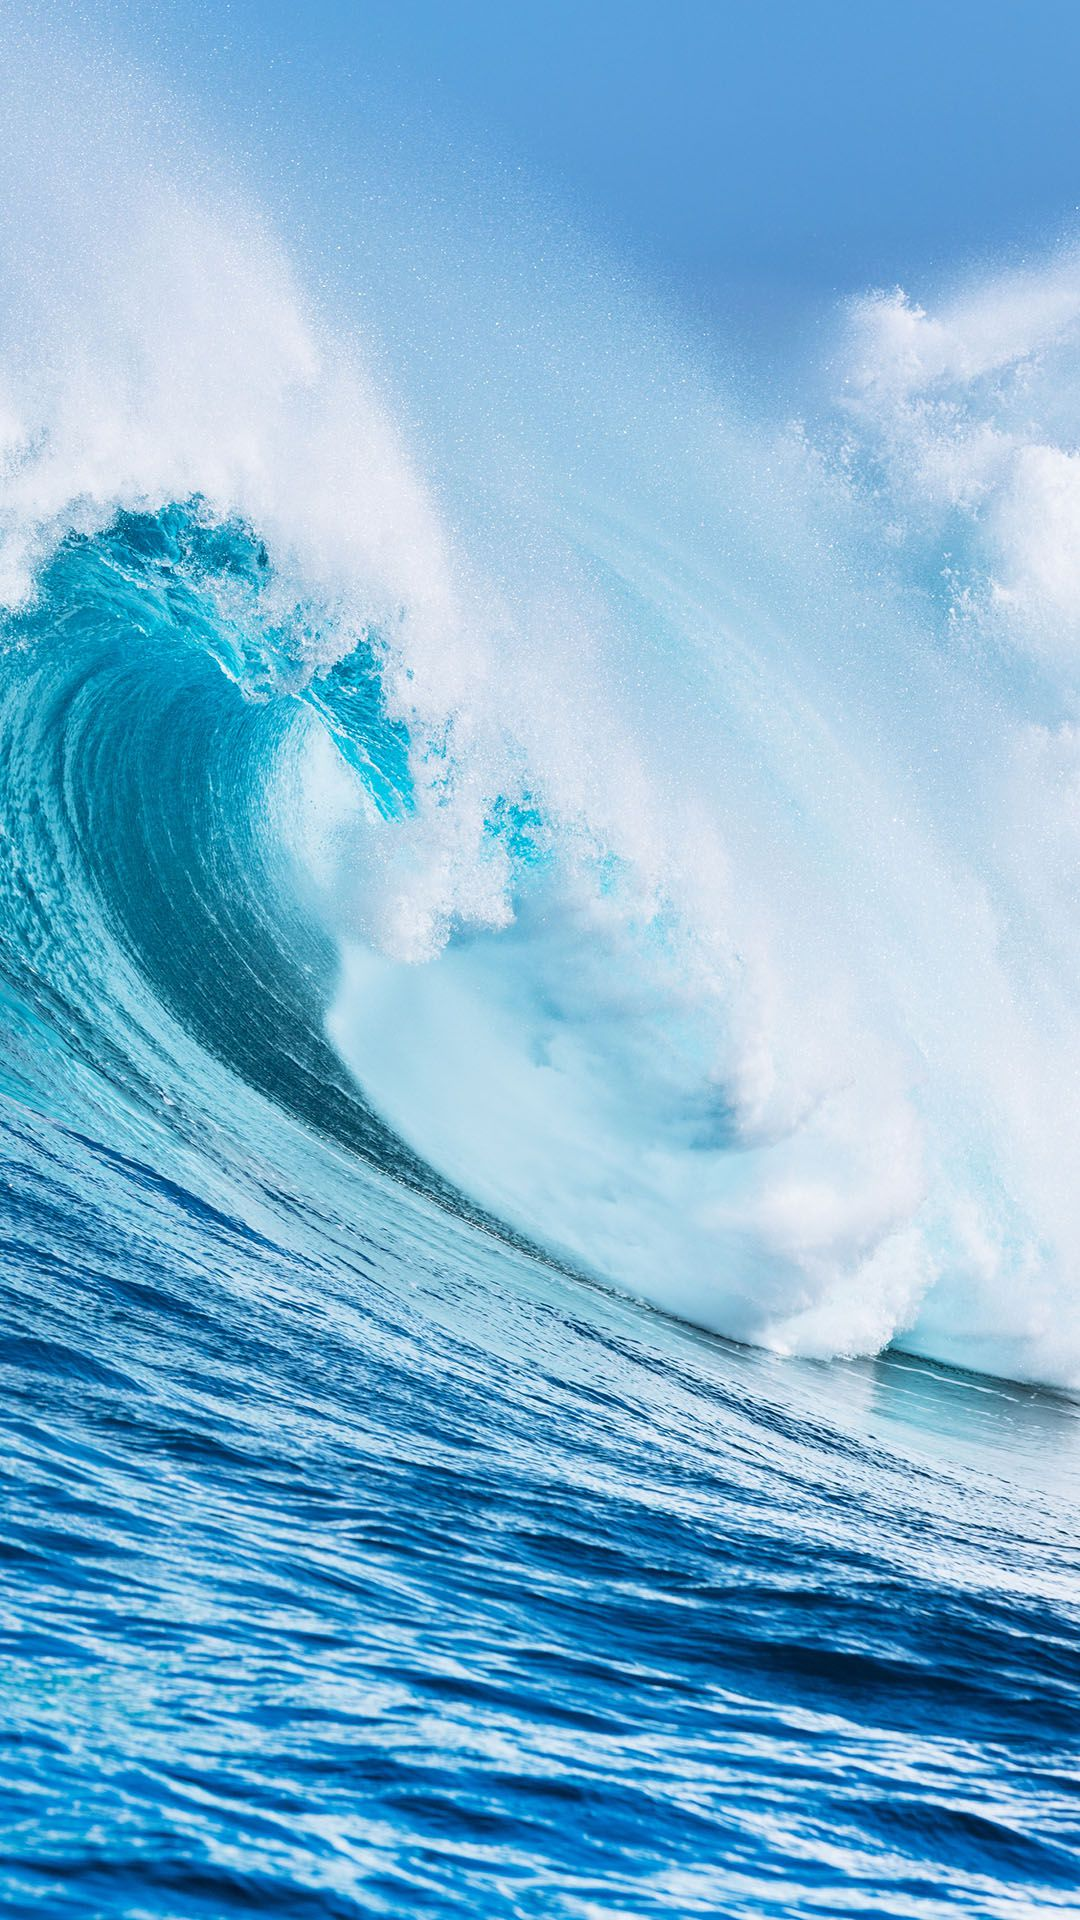 ocena wave blue water 1080x1920